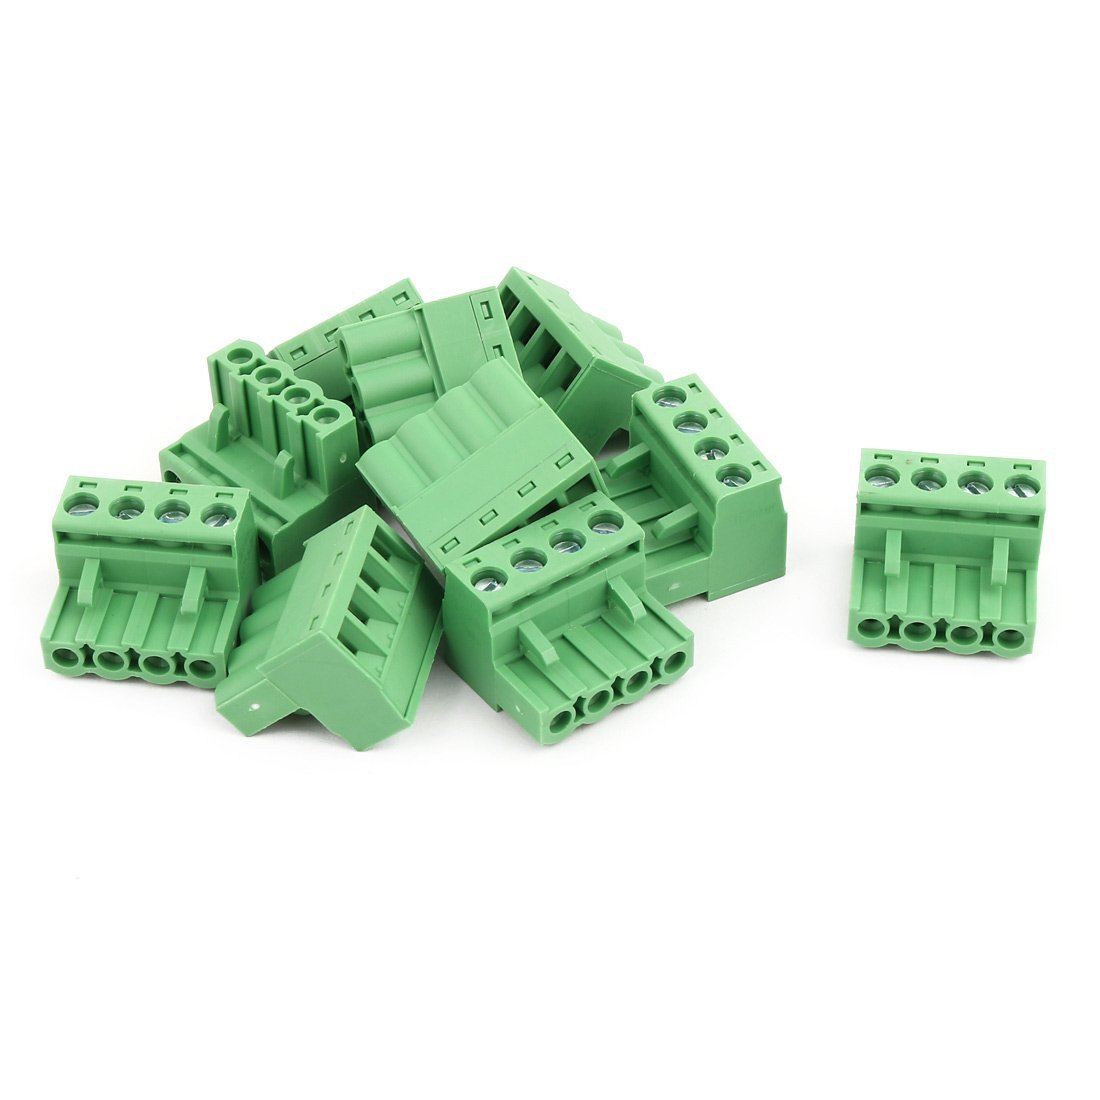 uxcell 10Pcs AC300V 15A 5.08mm Pitch 4P Terminals Block Wire Connection for PCB Mounting